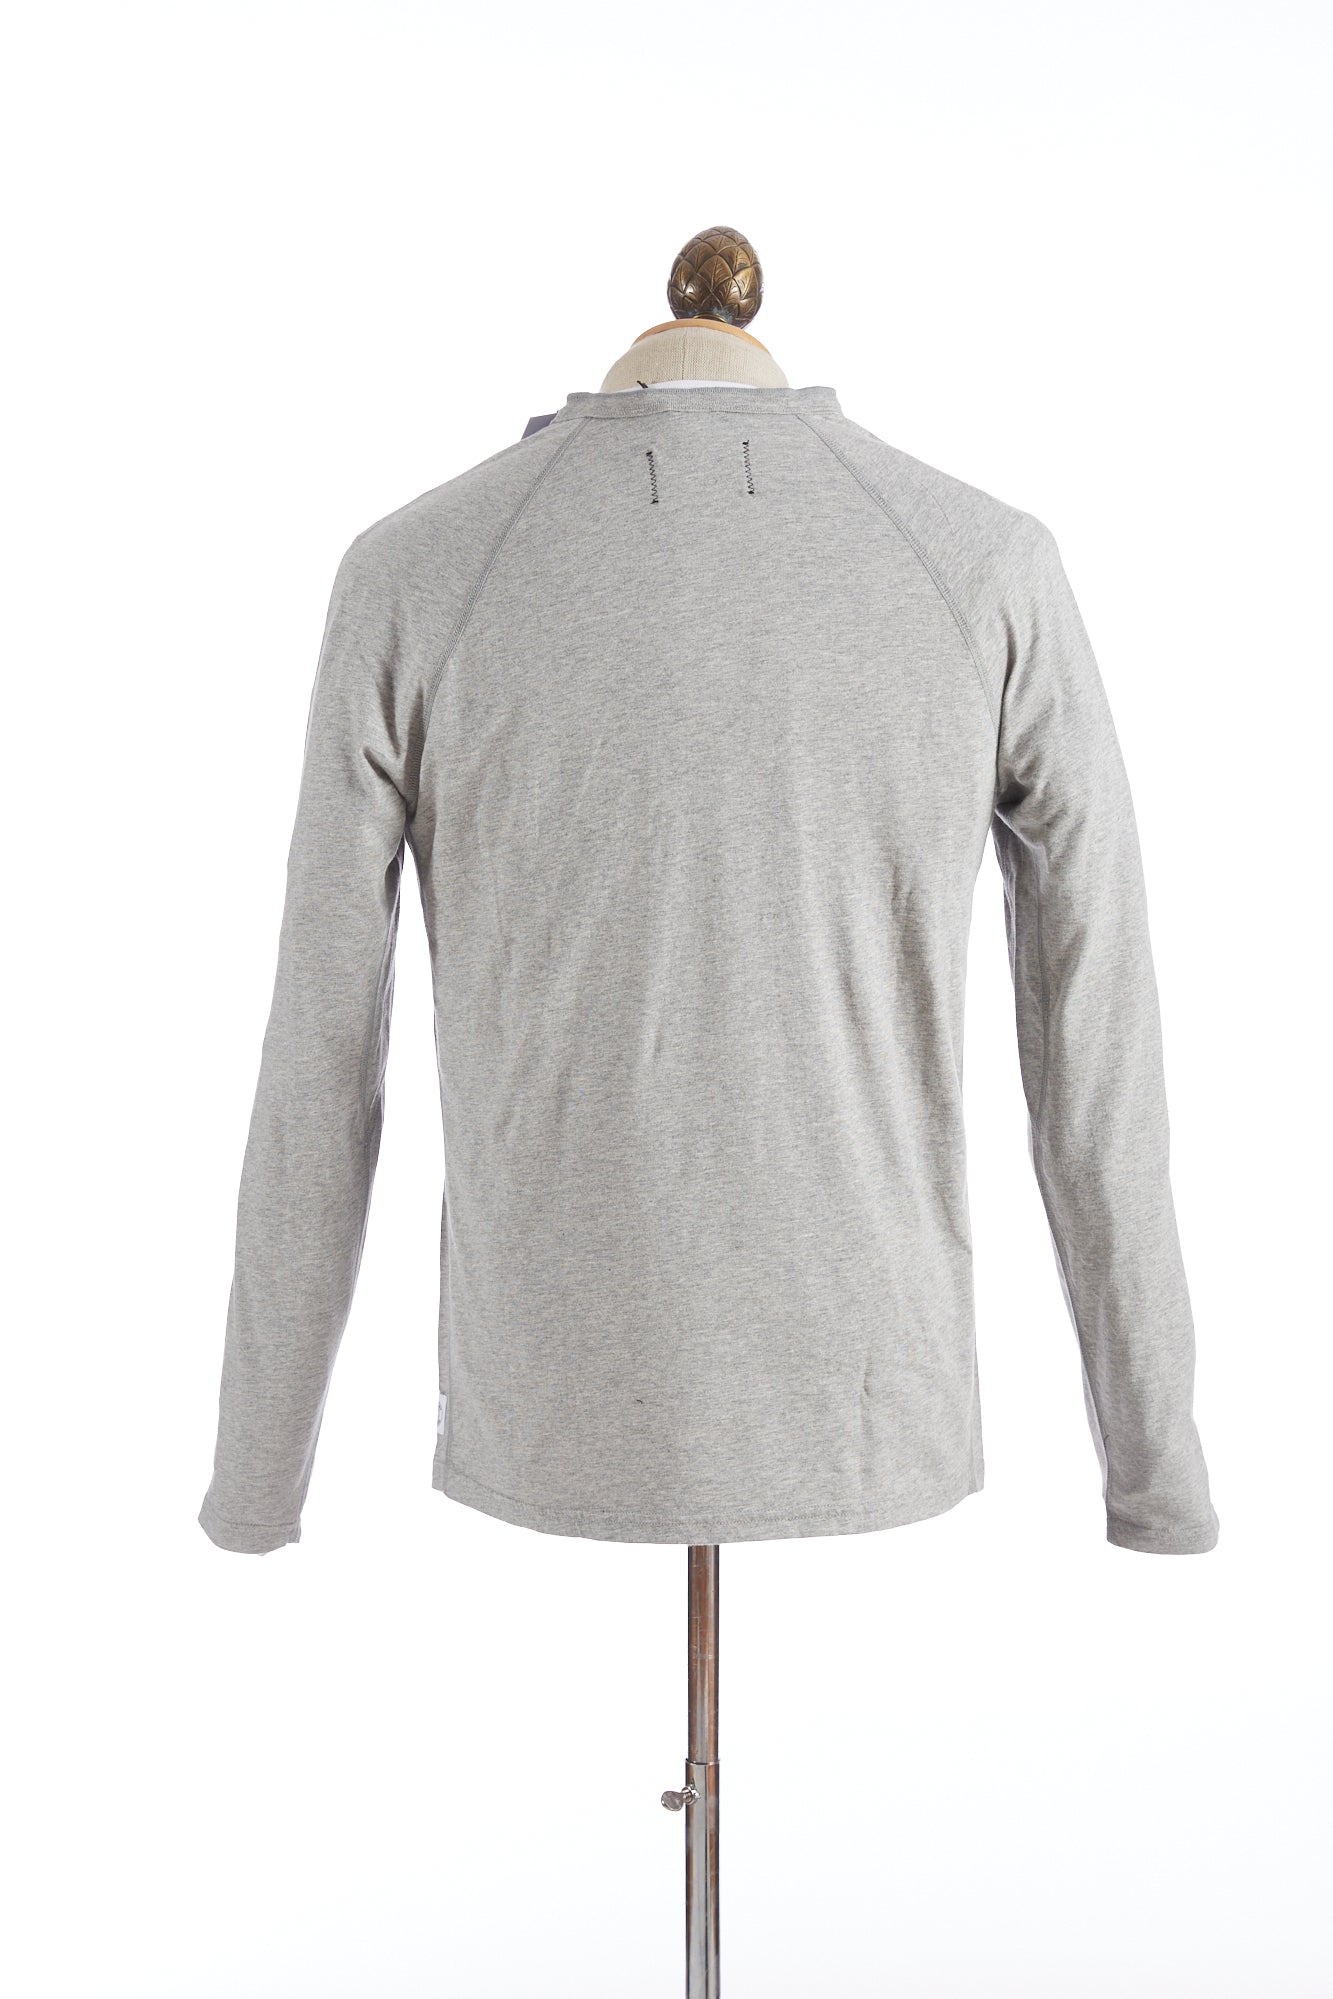 Reigning Champ Grey Long Sleeve Henley